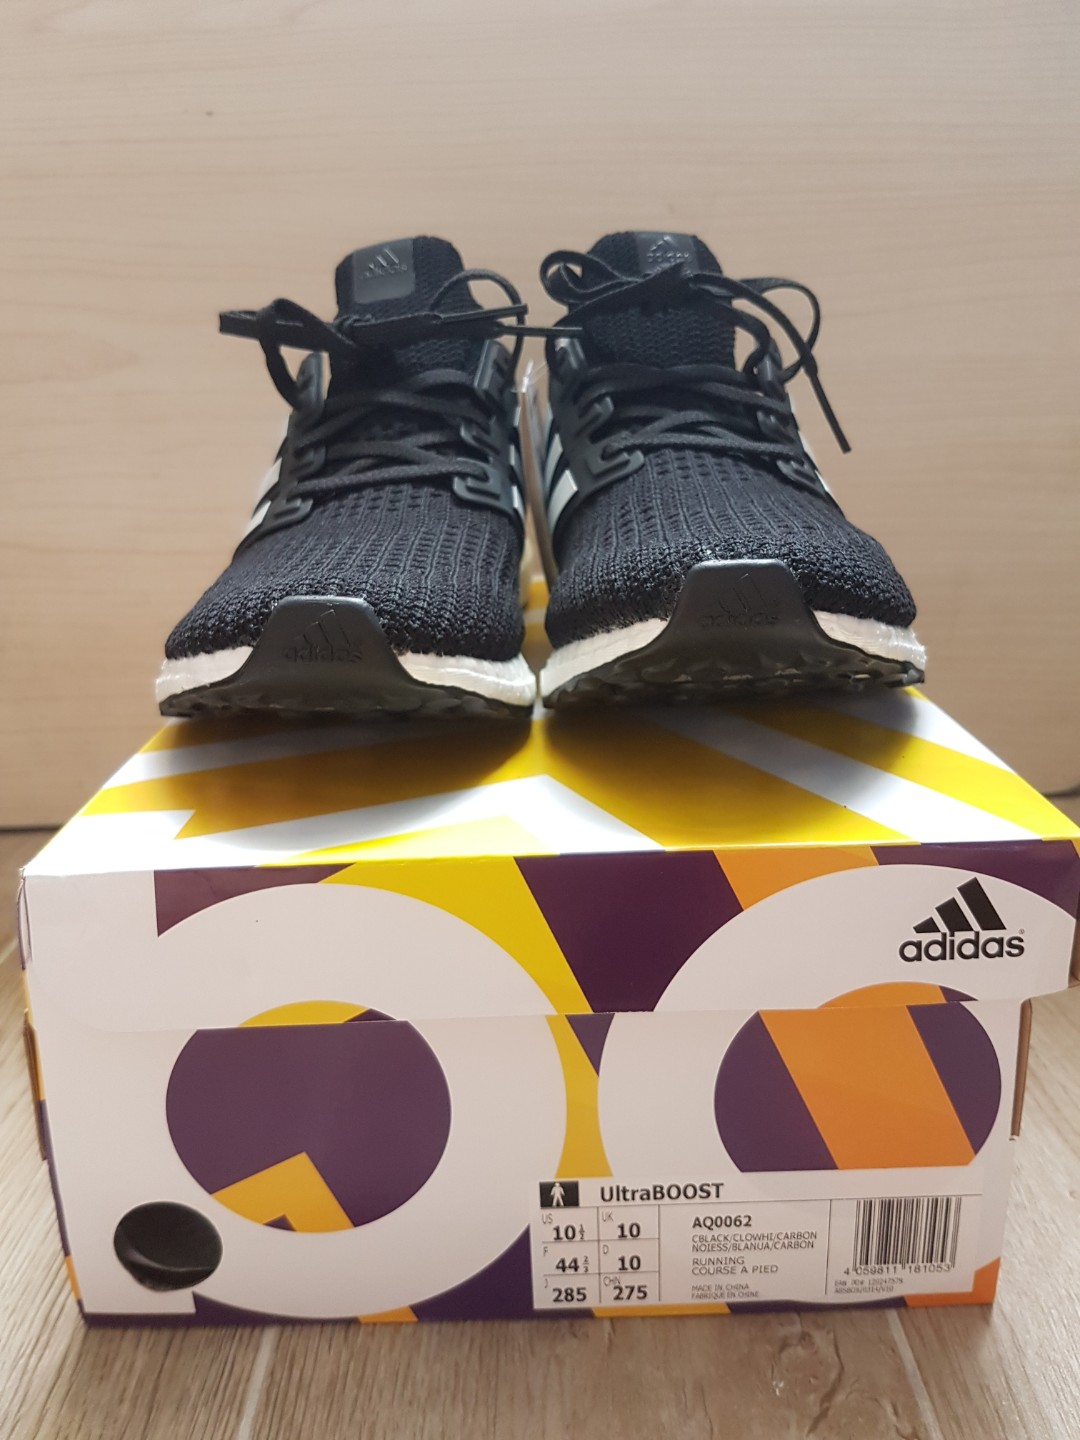 d5e392171730a 🔥US10.5🔥 Adidas UltraBoost 4.0  Show Your Stripes  Core Black ...